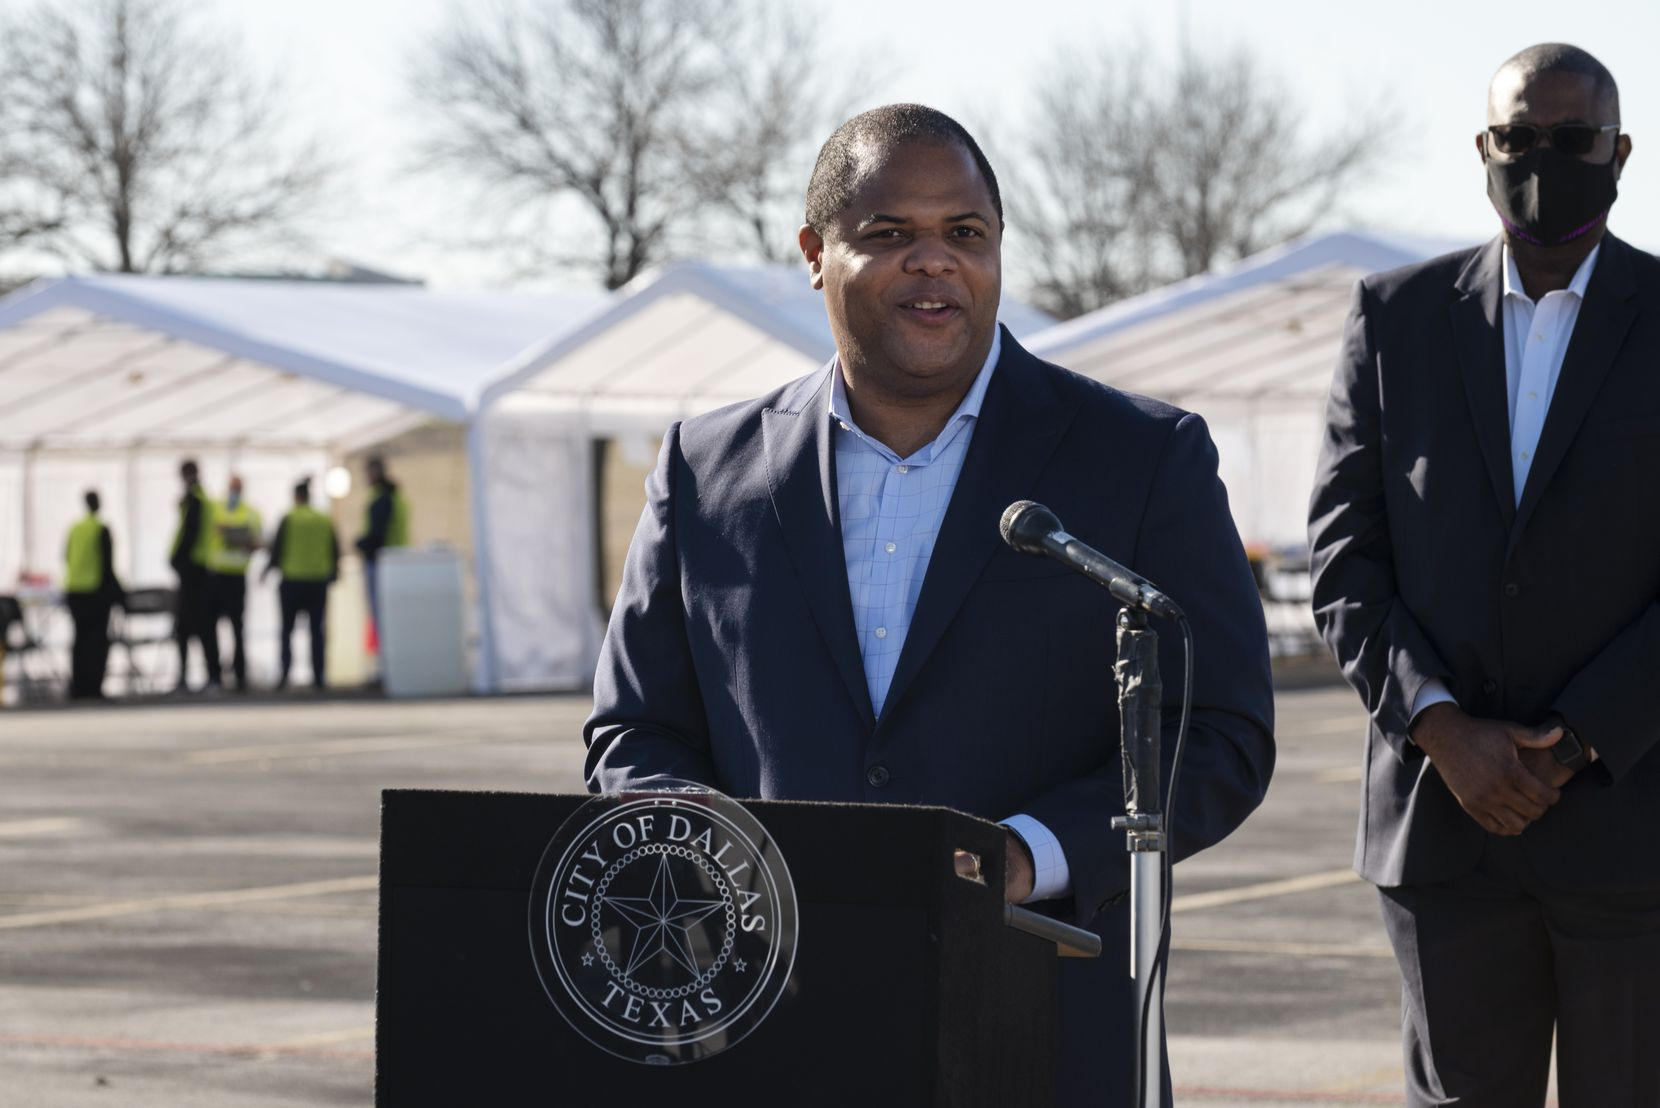 Dallas Mayor Eric Johnson addressed the media at The Potter's House before the city officially opened a drive-through vaccination site at the church.